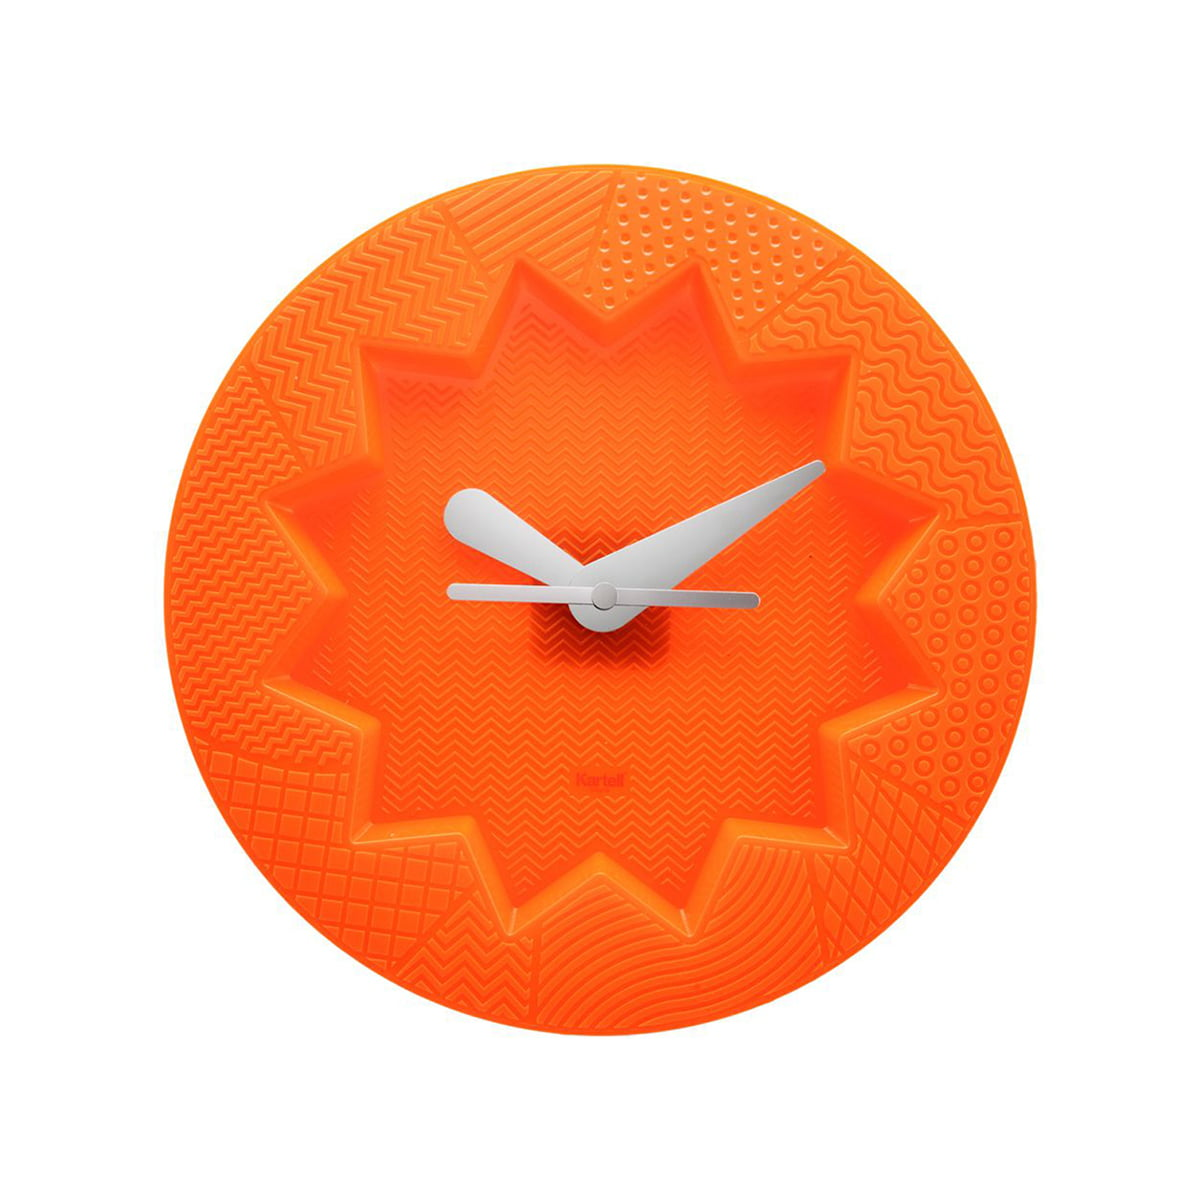 Crystal palace wall clock by kartell in the shop crystal palace wall clock by kartell in orange amipublicfo Choice Image